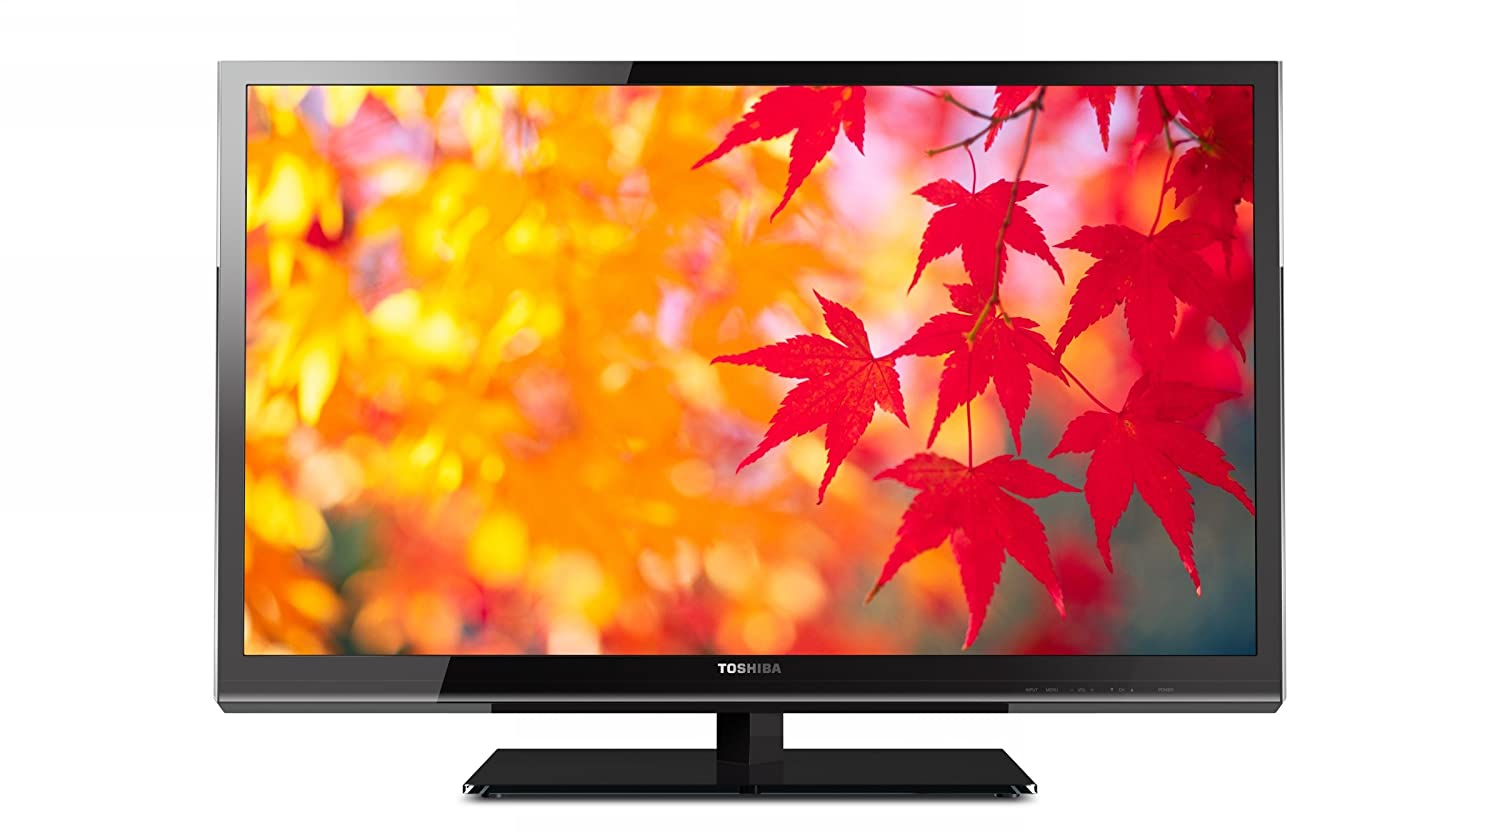 Amazon.com: Toshiba 42SL417U 42-Inch 1080p 120 Hz LED HDTV with Net TV,  Black (2011 Model): Electronics